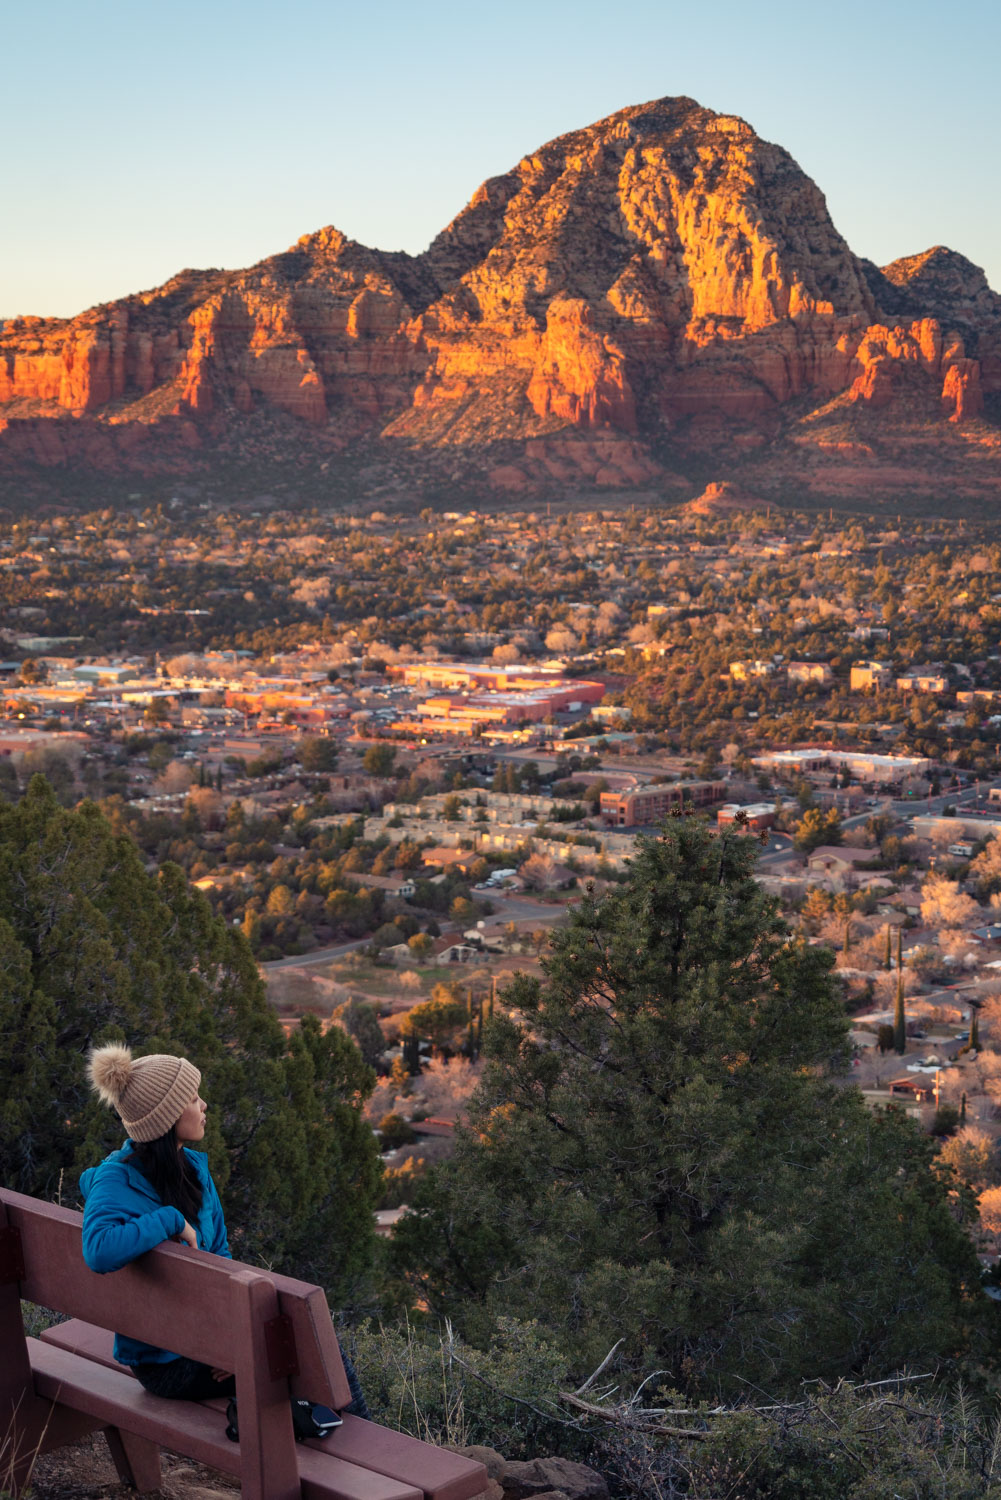 Best hikes for photography in Sedona